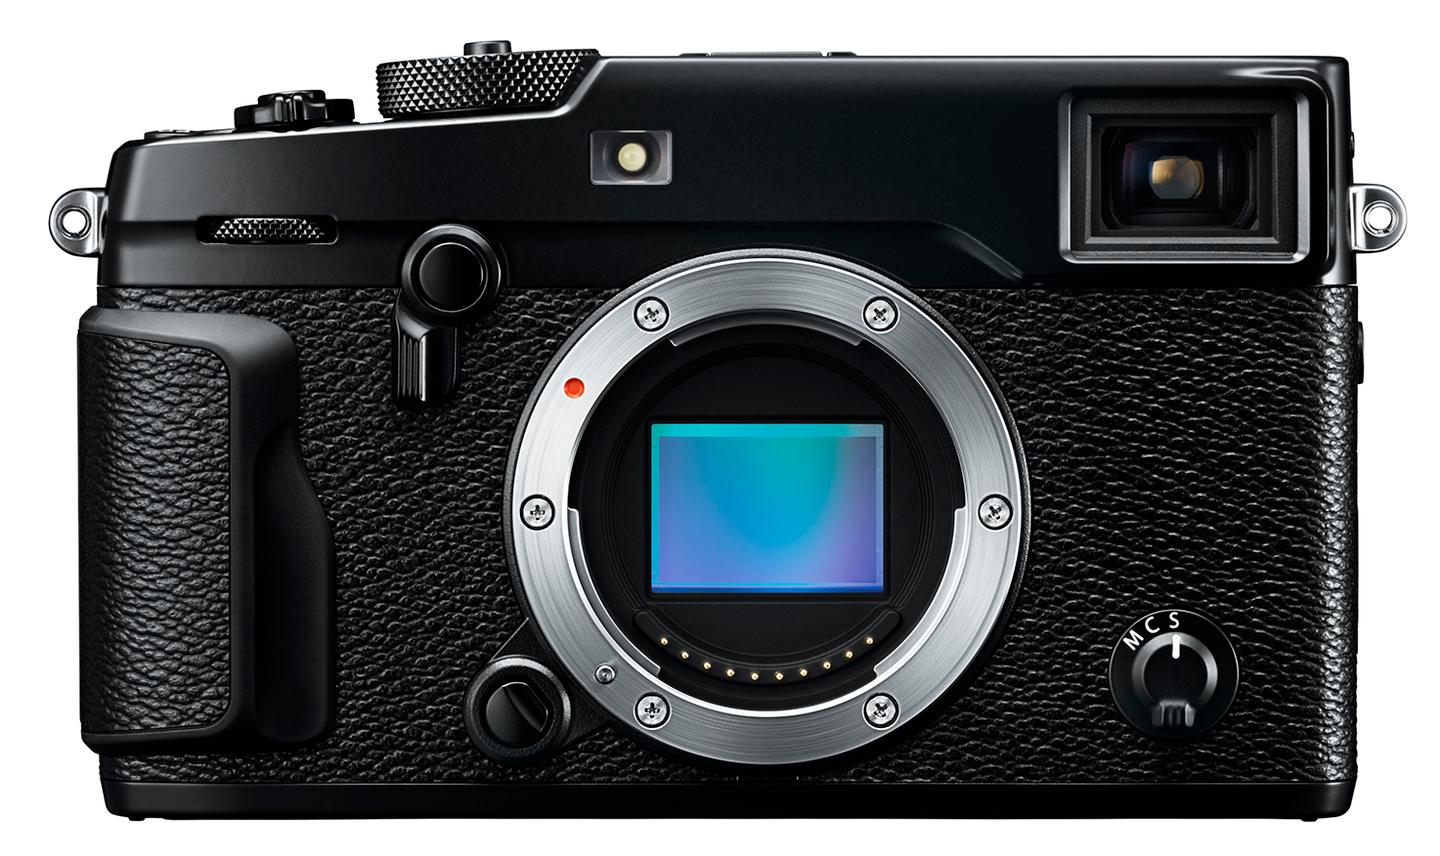 The Fujifilm X-Pro2 features a new 24-megapixel APS-C X-Trans CMOS III image sensor